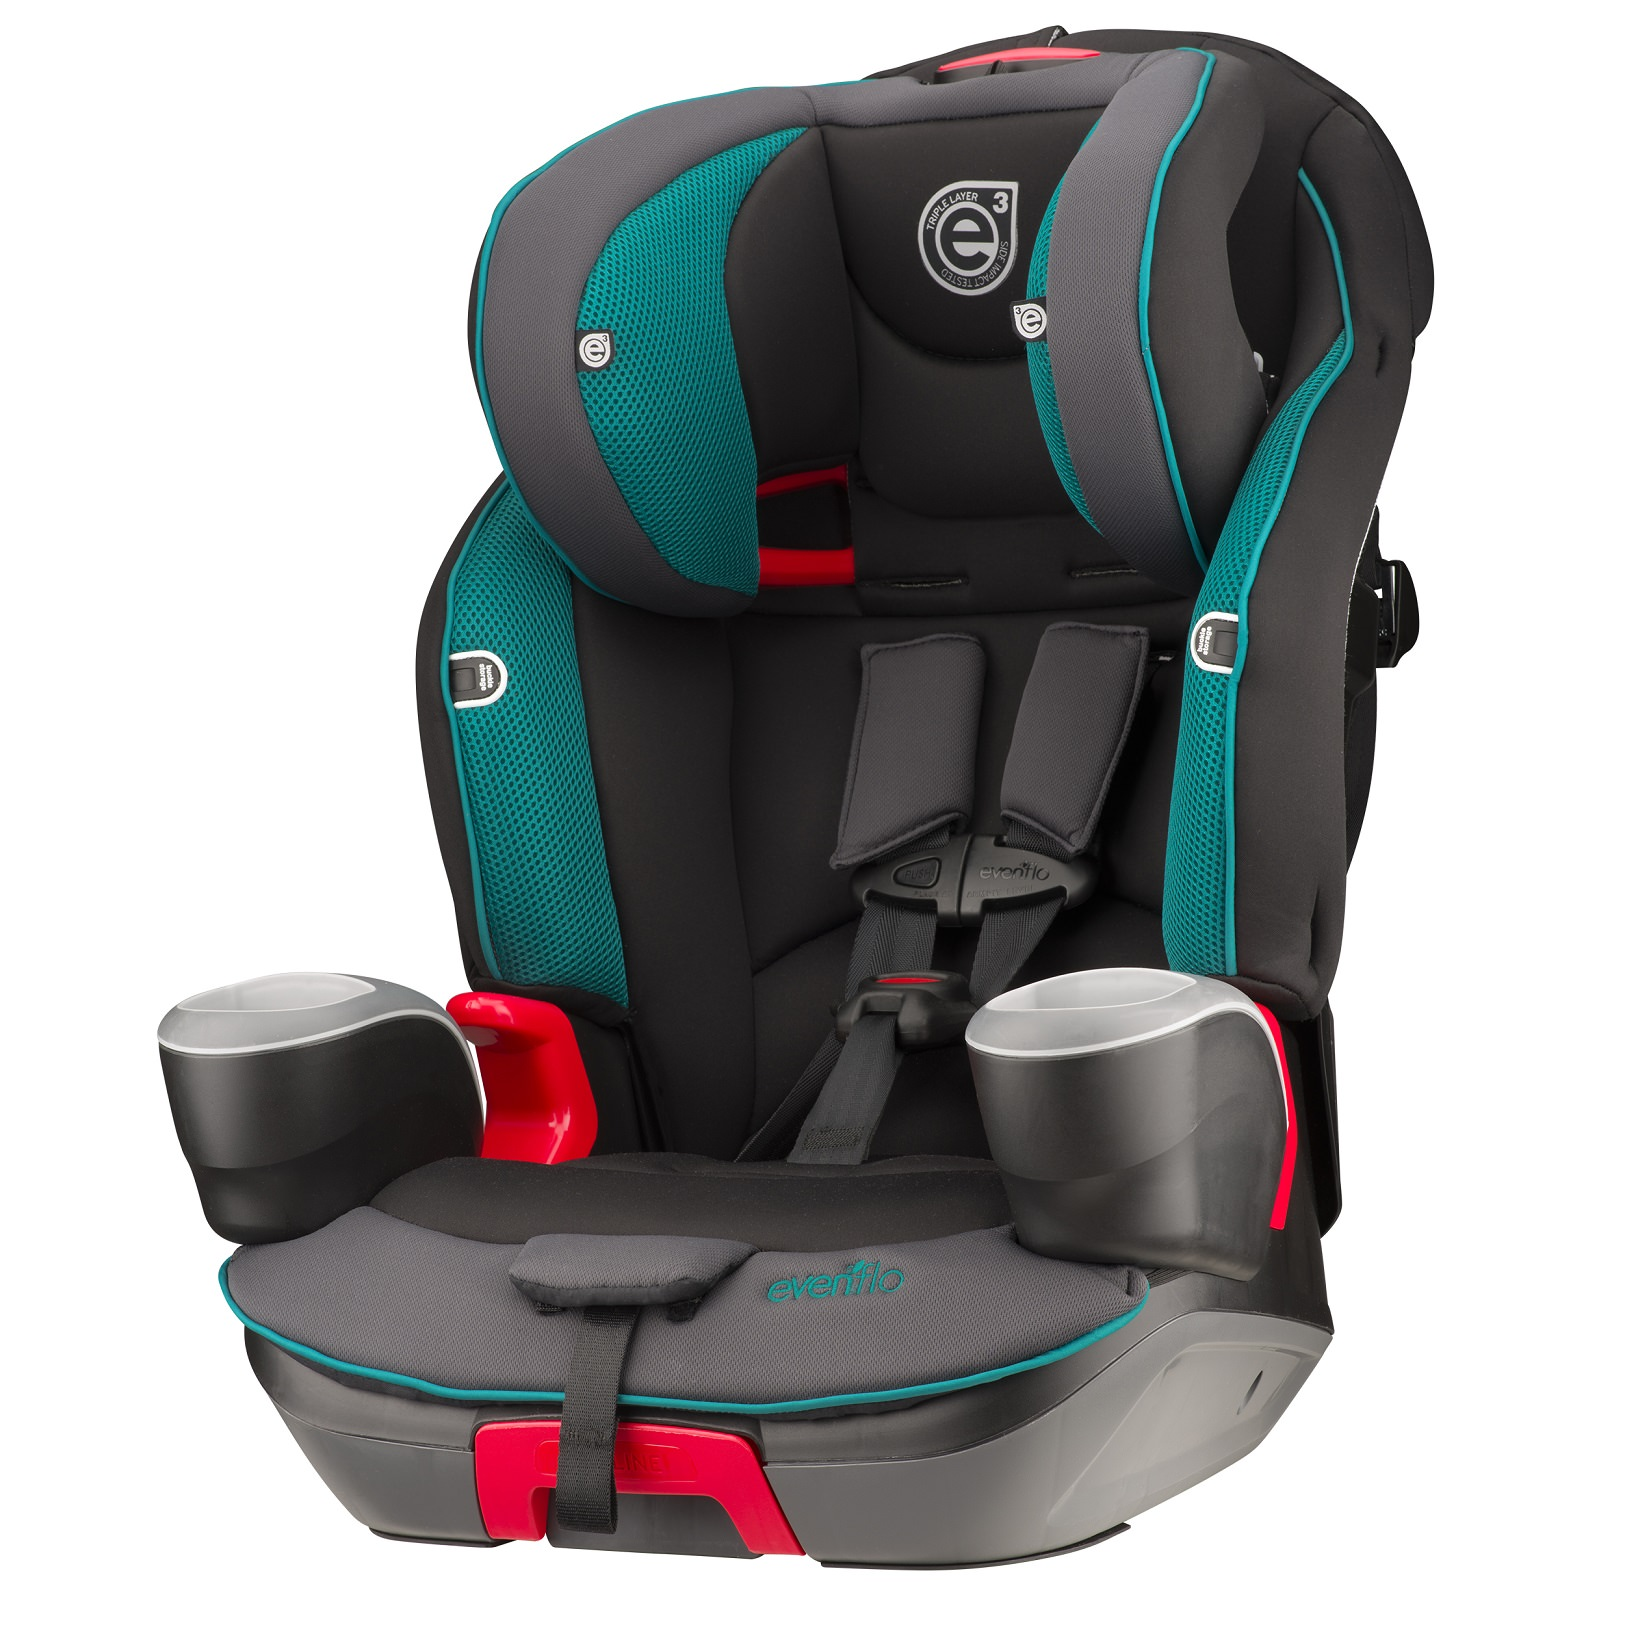 Evenflo Evolve™ 3-In-1 Combination Booster Car Seat, Waterfall Mist